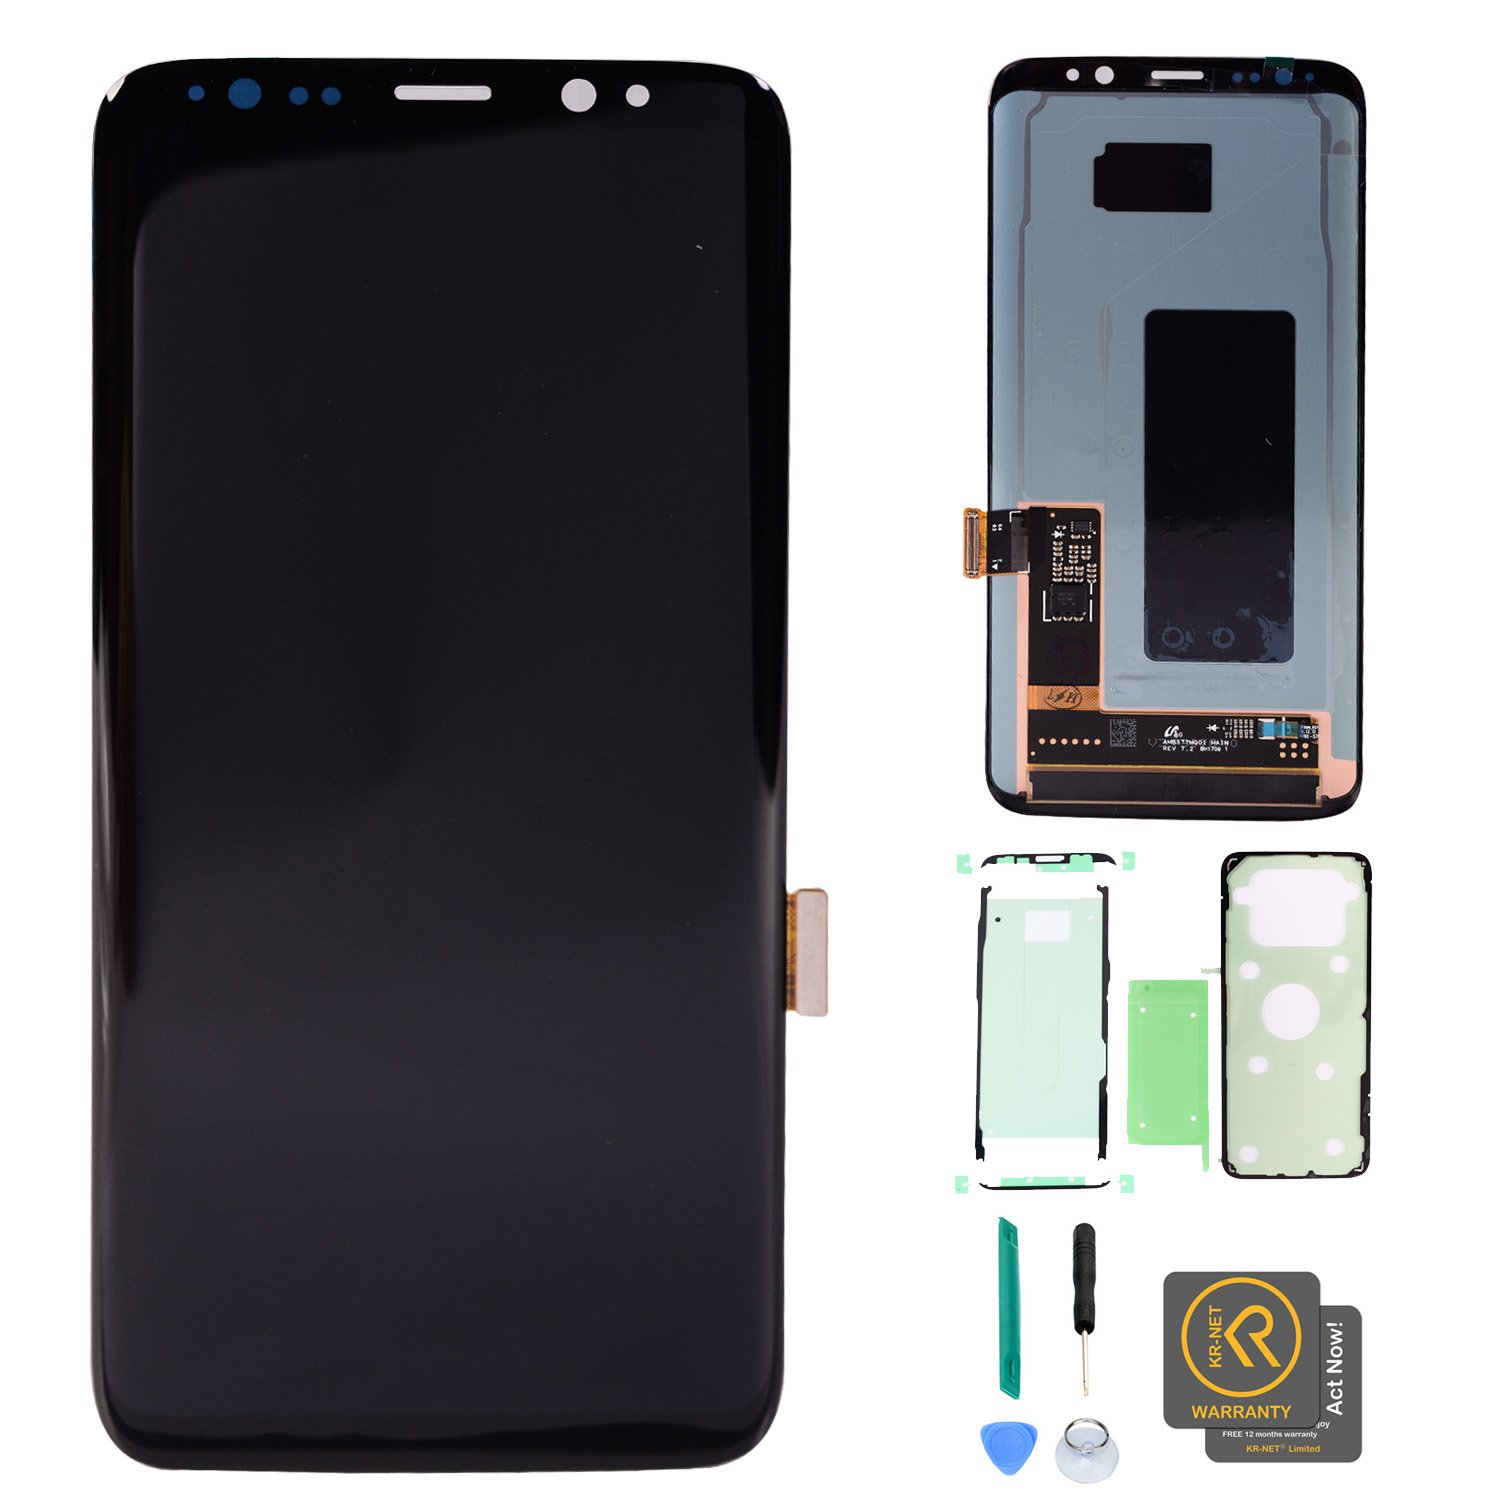 KR-NET AMOLED LCD Display Touch Screen Digitizer Assembly Replacement + Full Set PreCut Adhesive for Samsung Galaxy S8 G950F G950A G950P G950V G950T G950R4